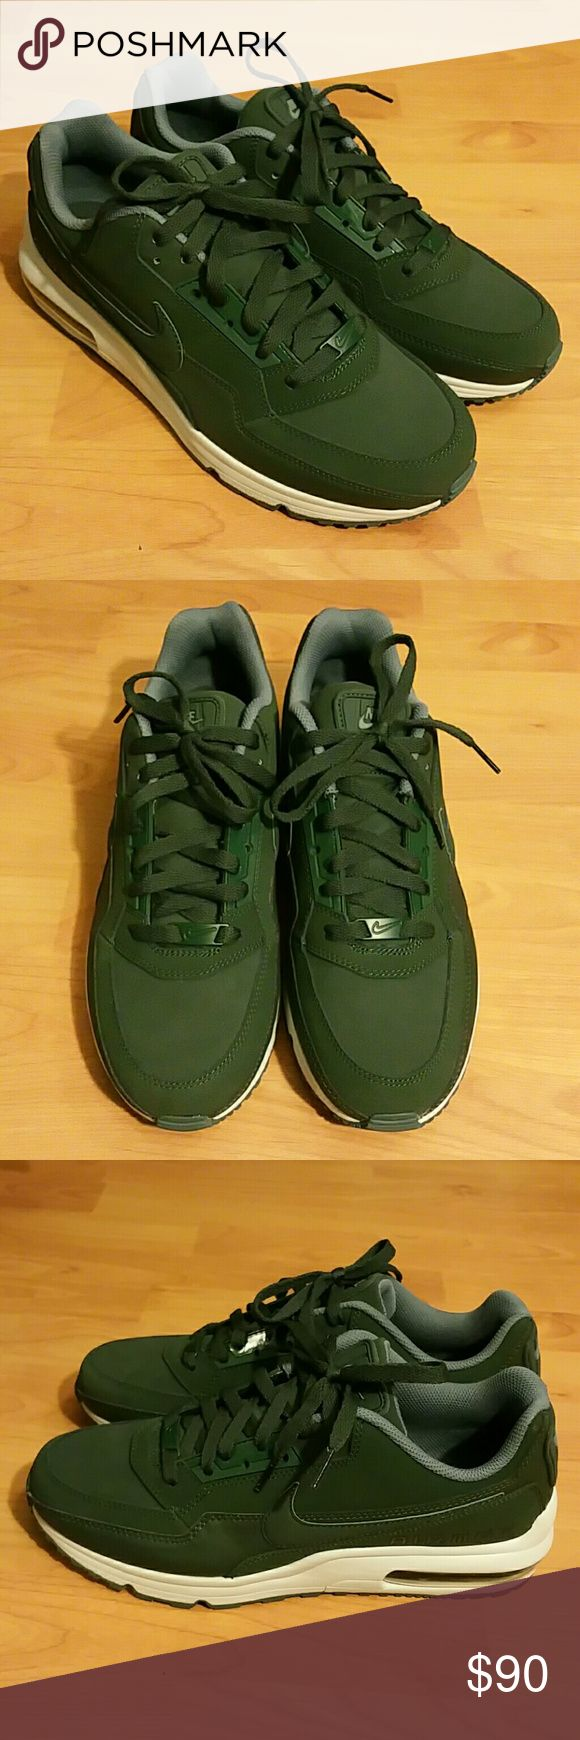 Nike Air Max LTD 3 Size 10. New. Never worn. Nike Shoes Sneakers